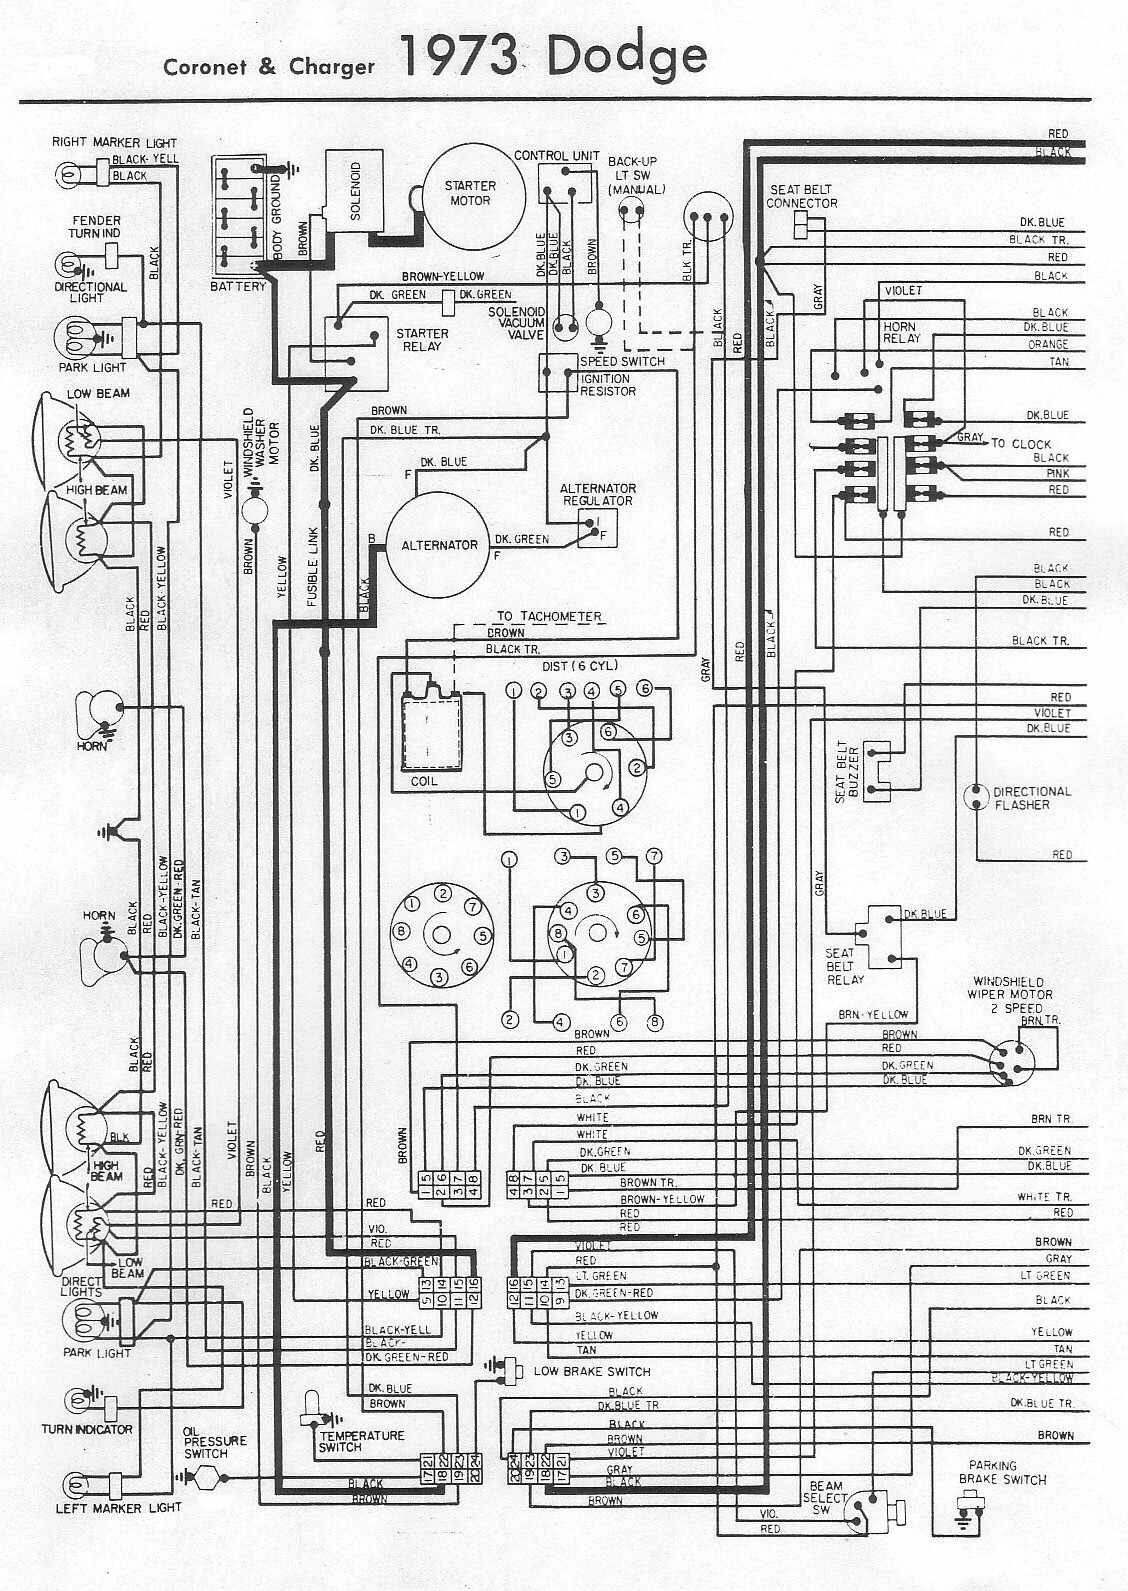 small resolution of 1973 dodge challenger wiring diagram somurich com 08 dodge charger wiring diagrams automotive dodge wiring diagram wires